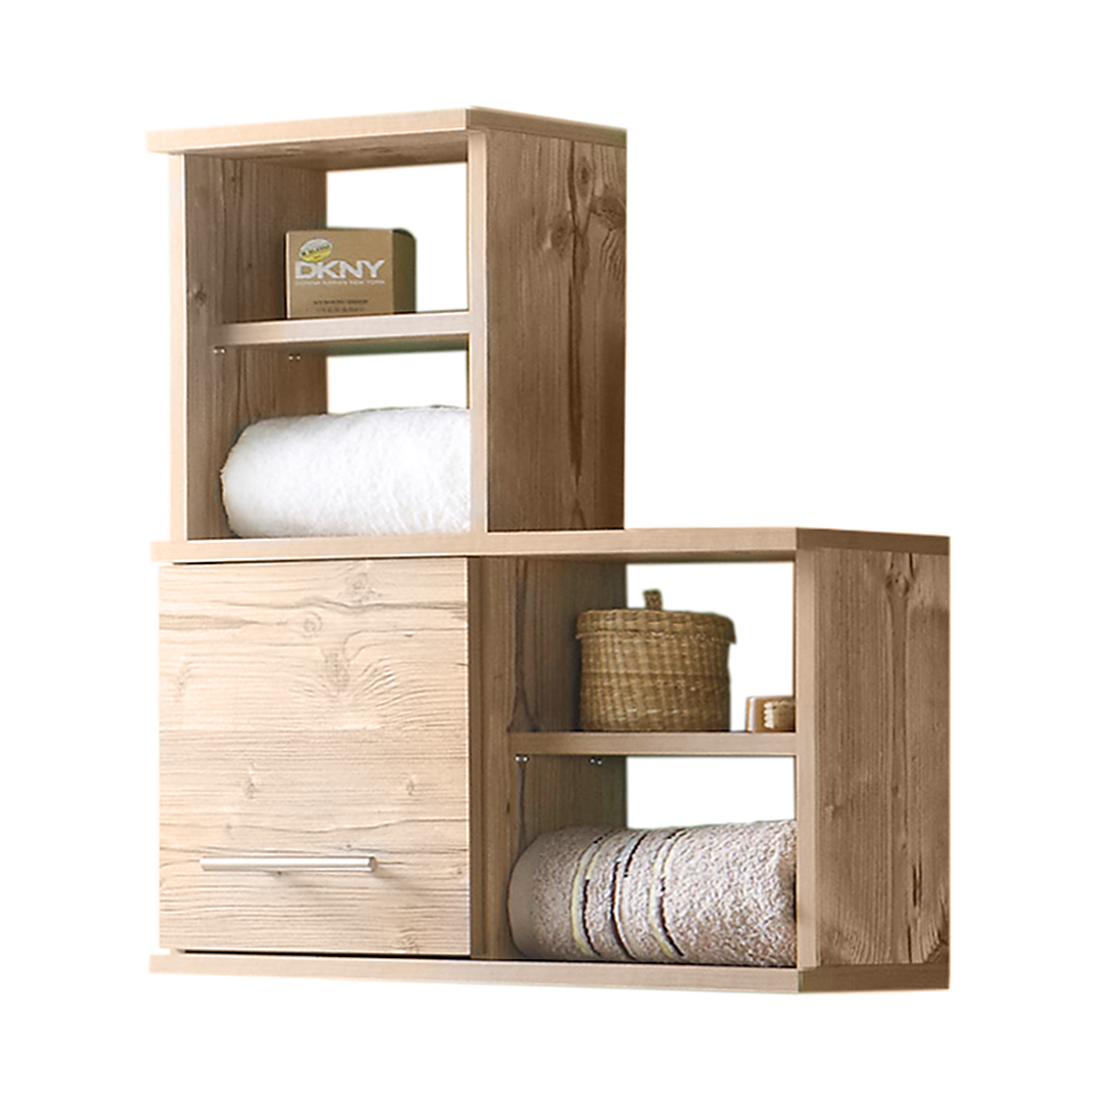 badezimmer h ngeschrank holz eckventil waschmaschine. Black Bedroom Furniture Sets. Home Design Ideas